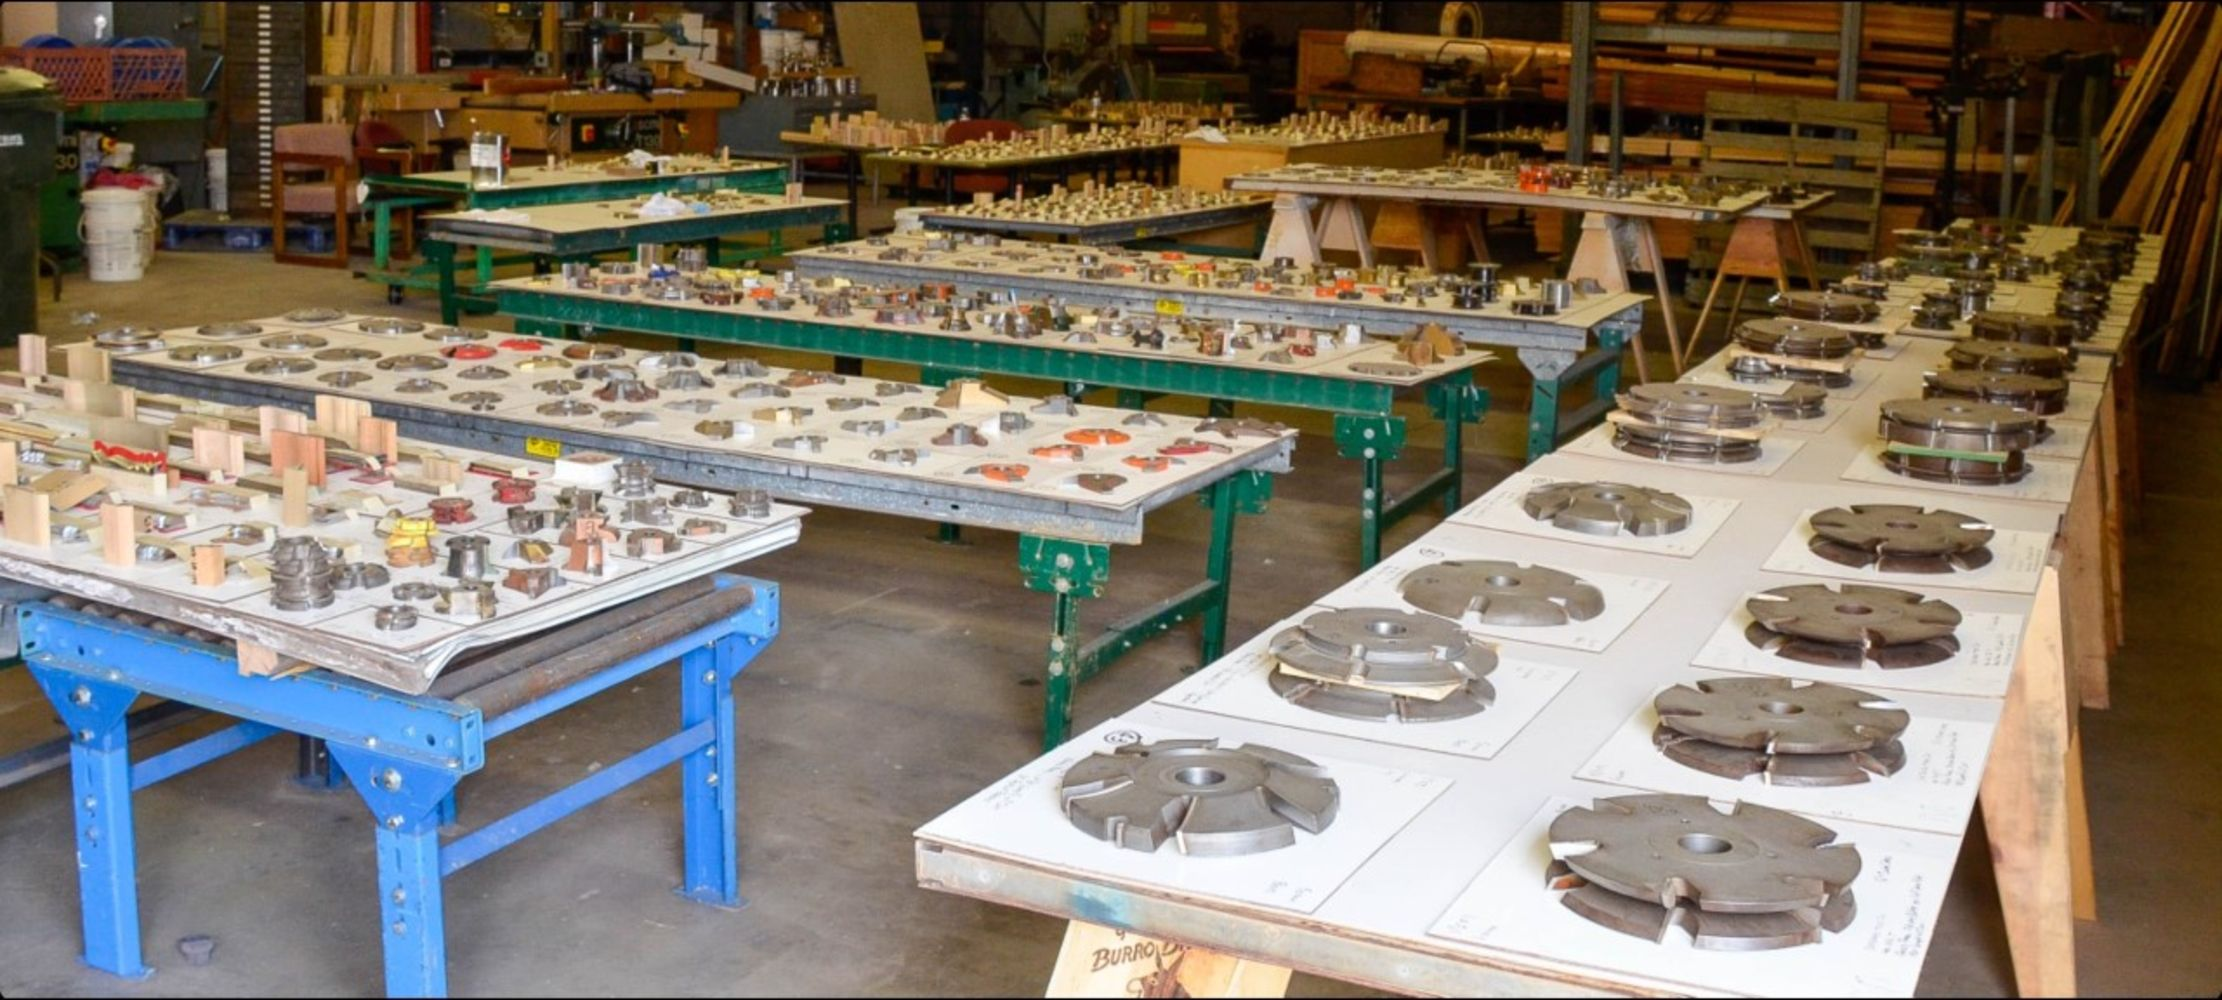 SPECIALIZED MILLWORK - SELLING DOOR SHOP EQUIPMENT, TOOLING, SHAPERS, CUTTERS, MOULDER KNIVES, & MORE!